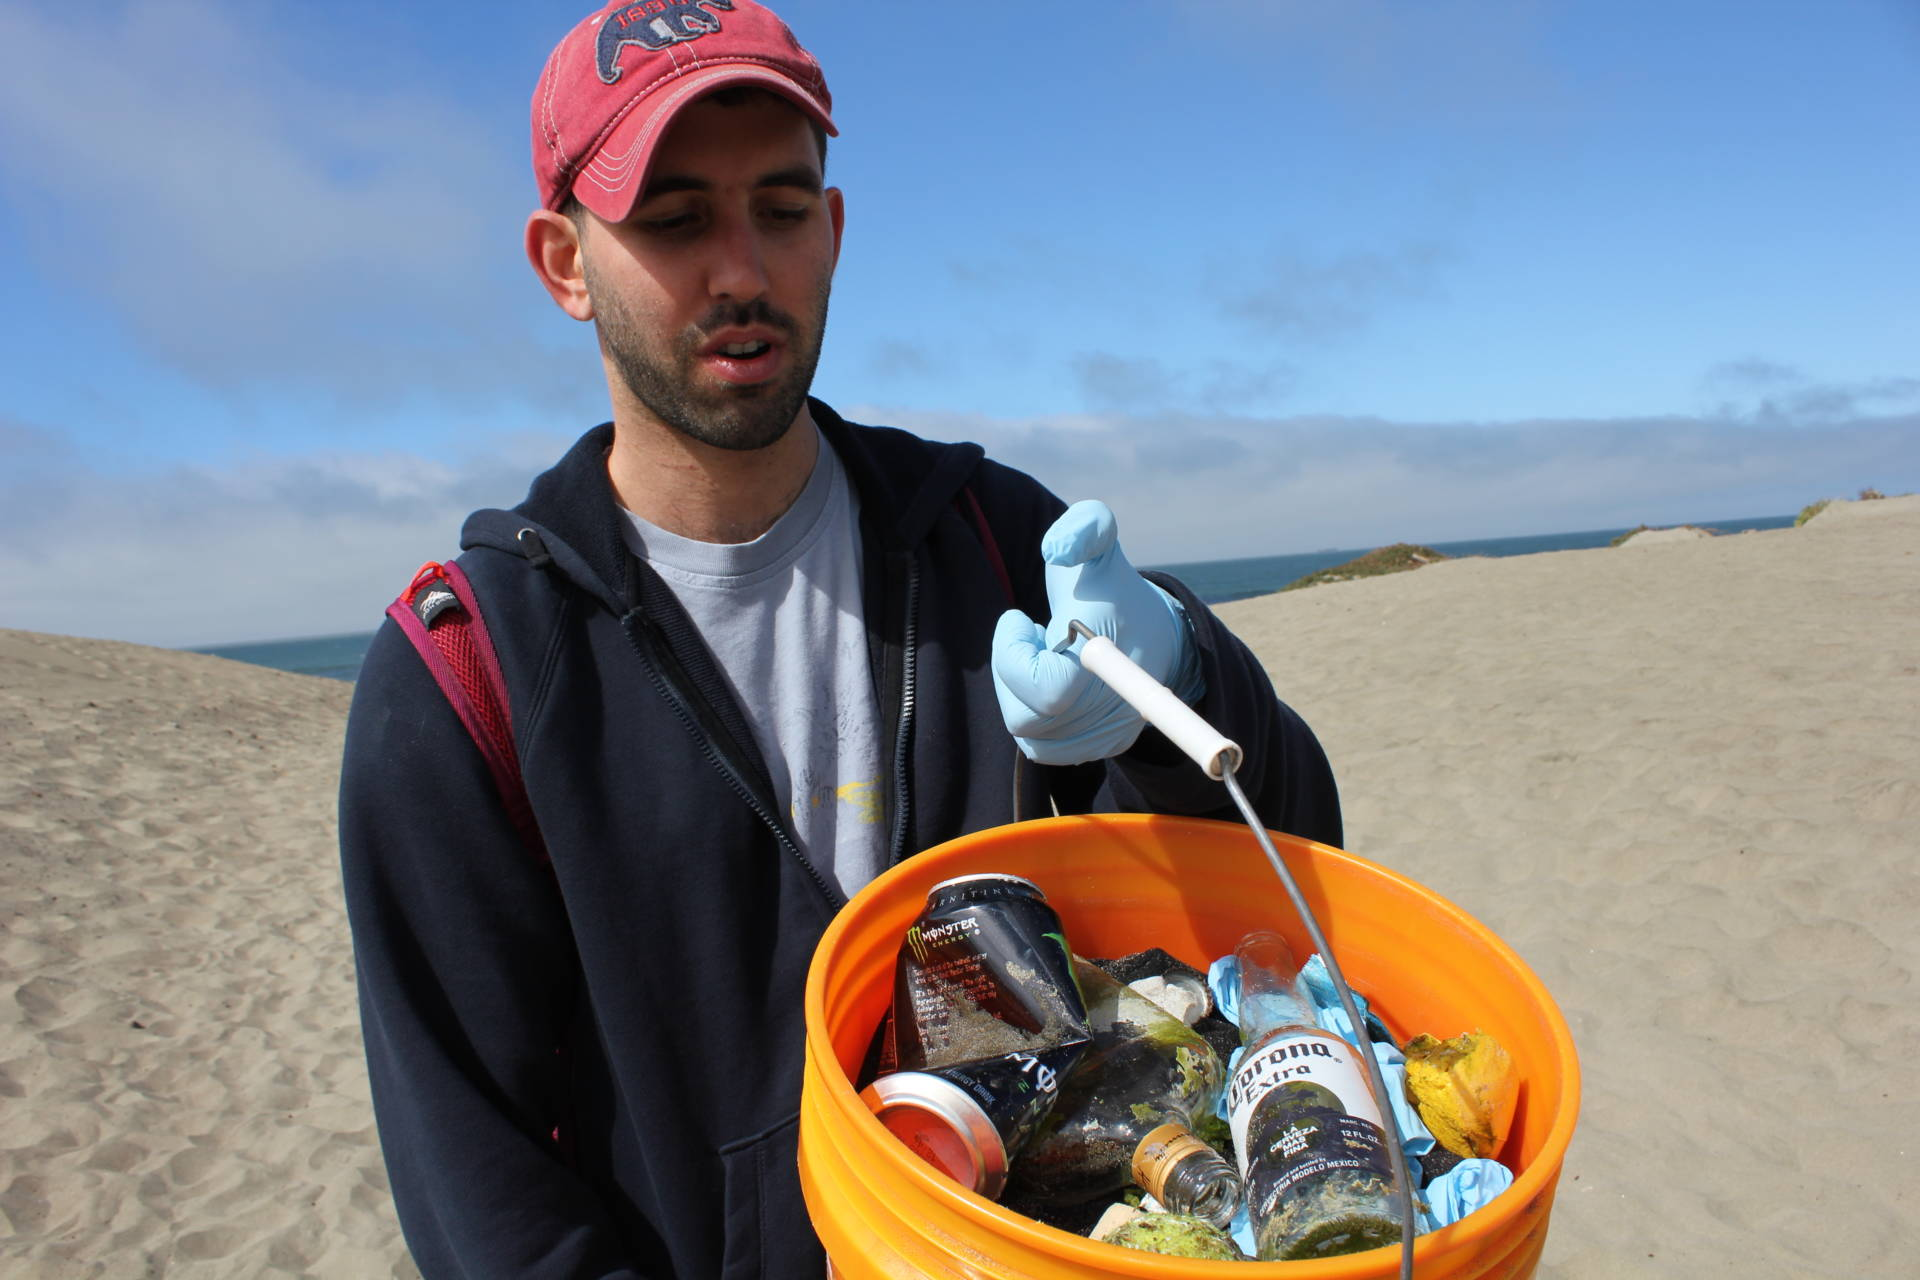 Sam Kizer of San Francisco showed off the bucket of trash he collected. It included a couple of polyester sweaters fished out of the water with sticks, various bottles and a tennis ball. Sara Hossaini/KQED